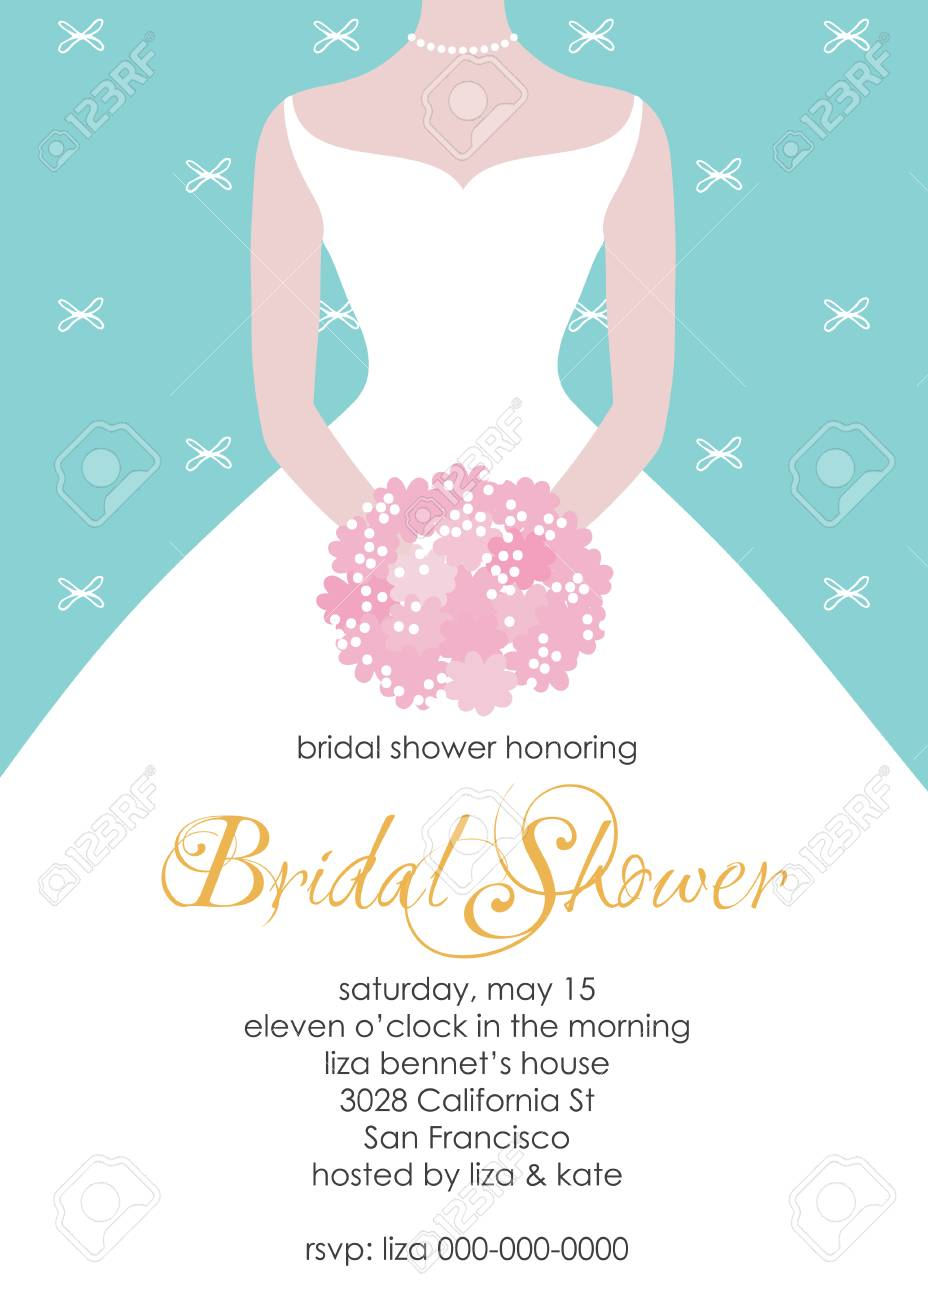 Bridal Shower Invitation Template. Wedding Fashion Vector ...